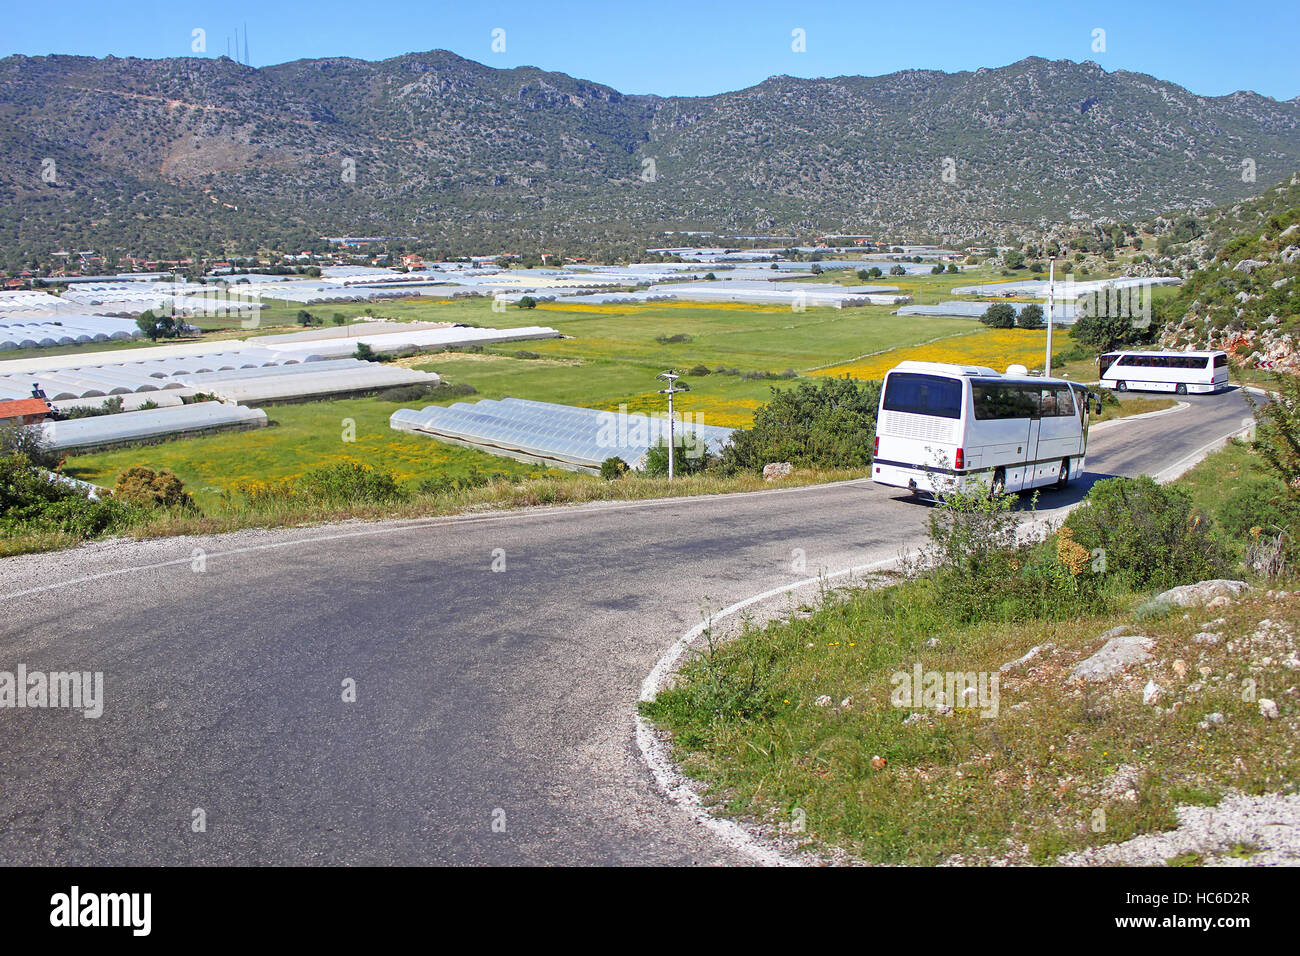 Glasshouses with plastic and touristic buses near village in Turkey - Stock Image